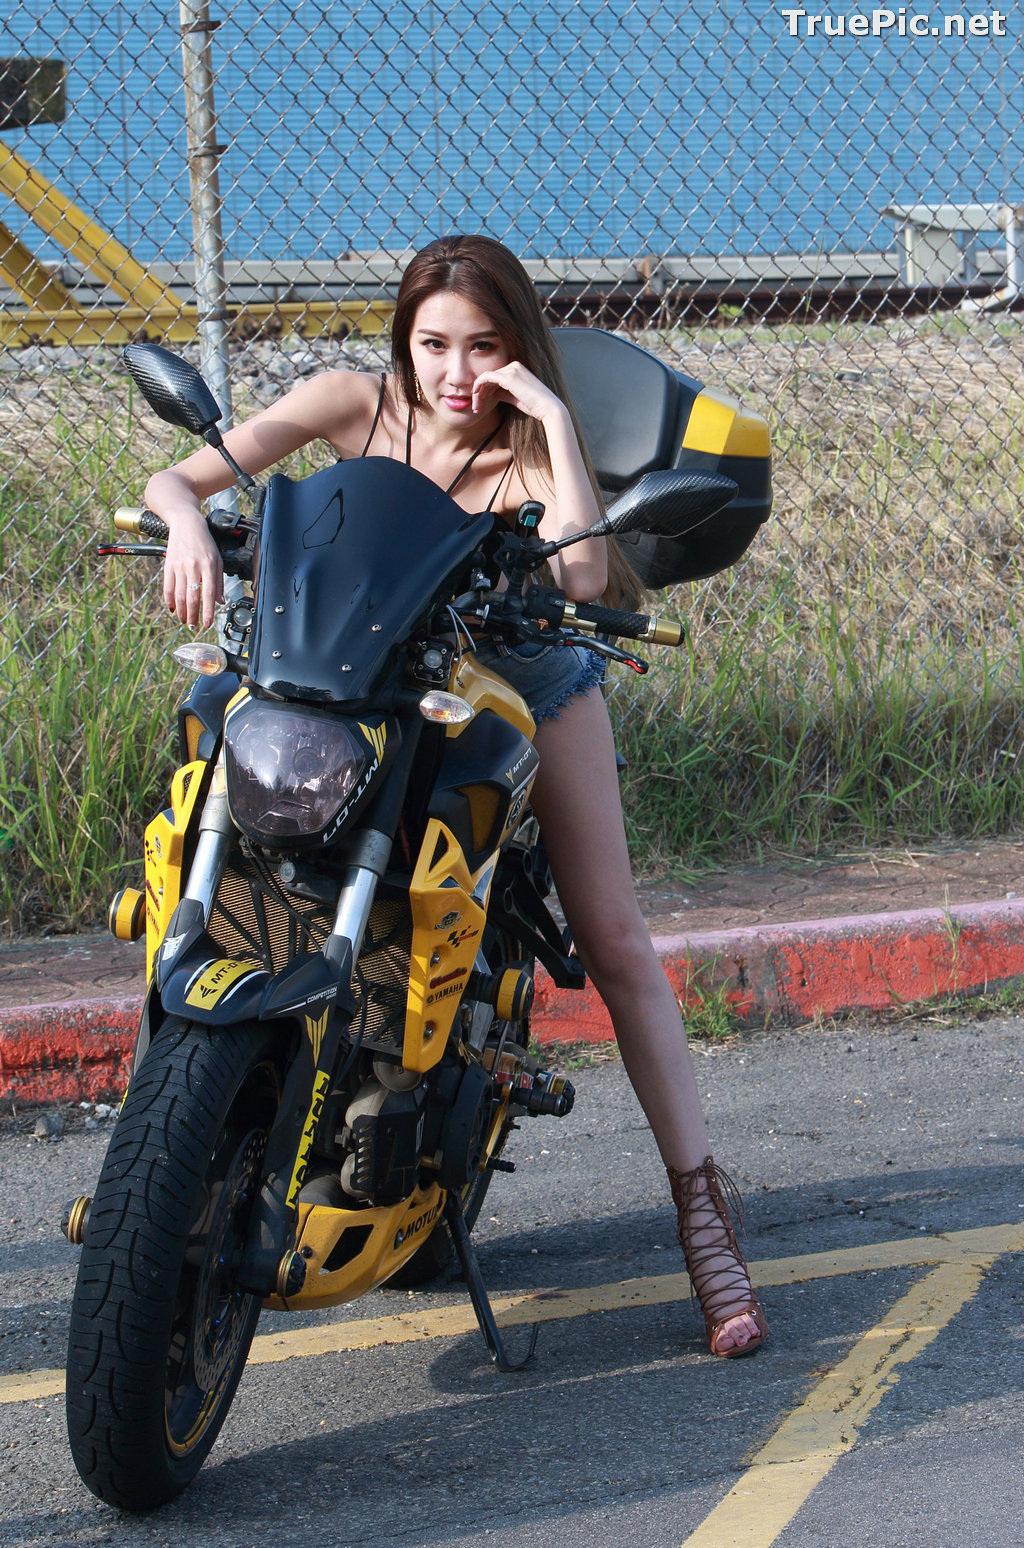 Image Taiwanese Model - Suki - Beautiful and Lovely Motor Racing Girl - TruePic.net - Picture-1